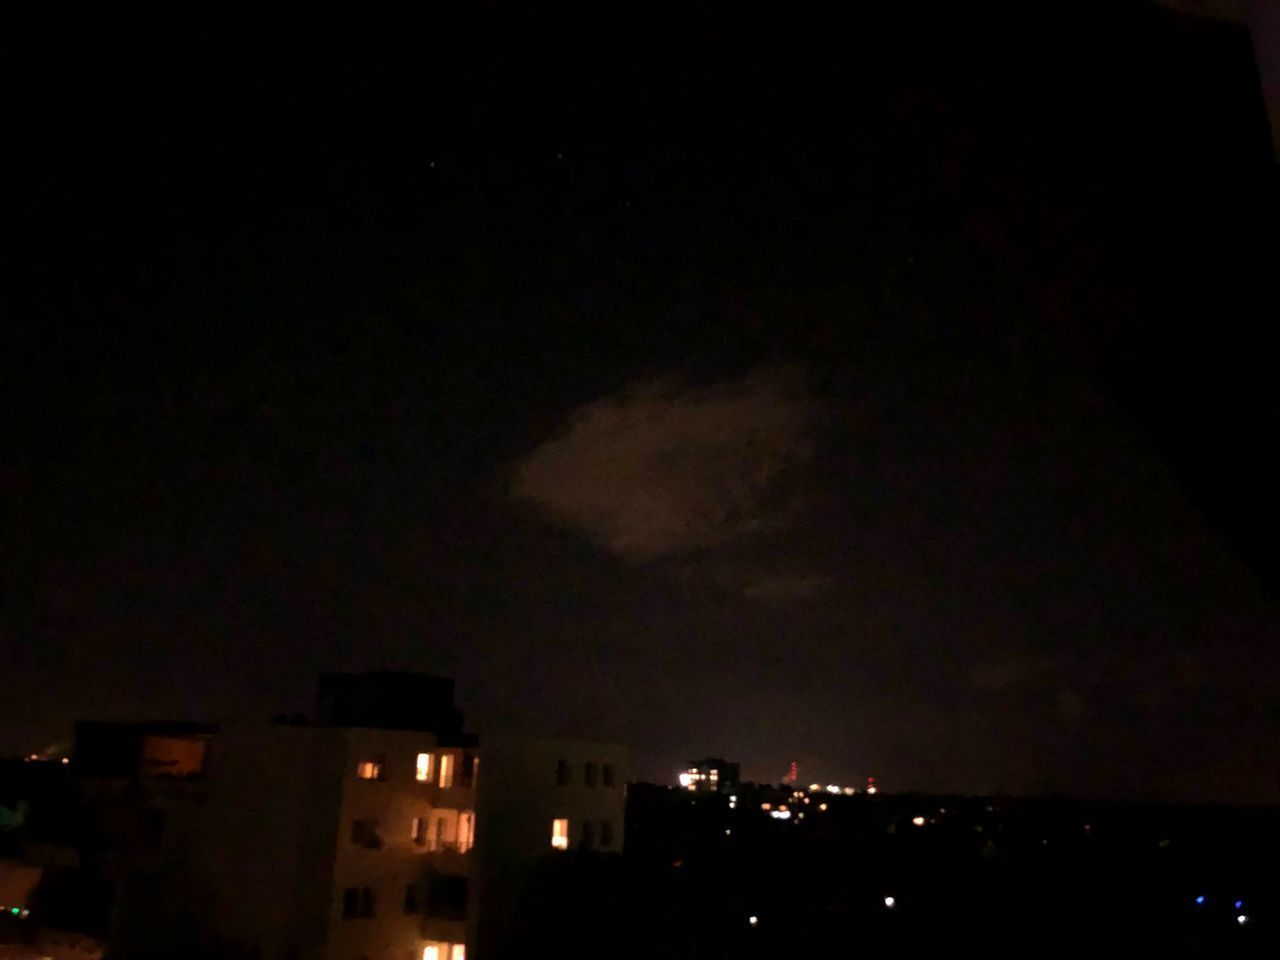 night, sky, architecture, illuminated, built structure, building exterior, city, cloud - sky, building, no people, nature, copy space, silhouette, dark, residential district, outdoors, cityscape, beauty in nature, house, power in nature